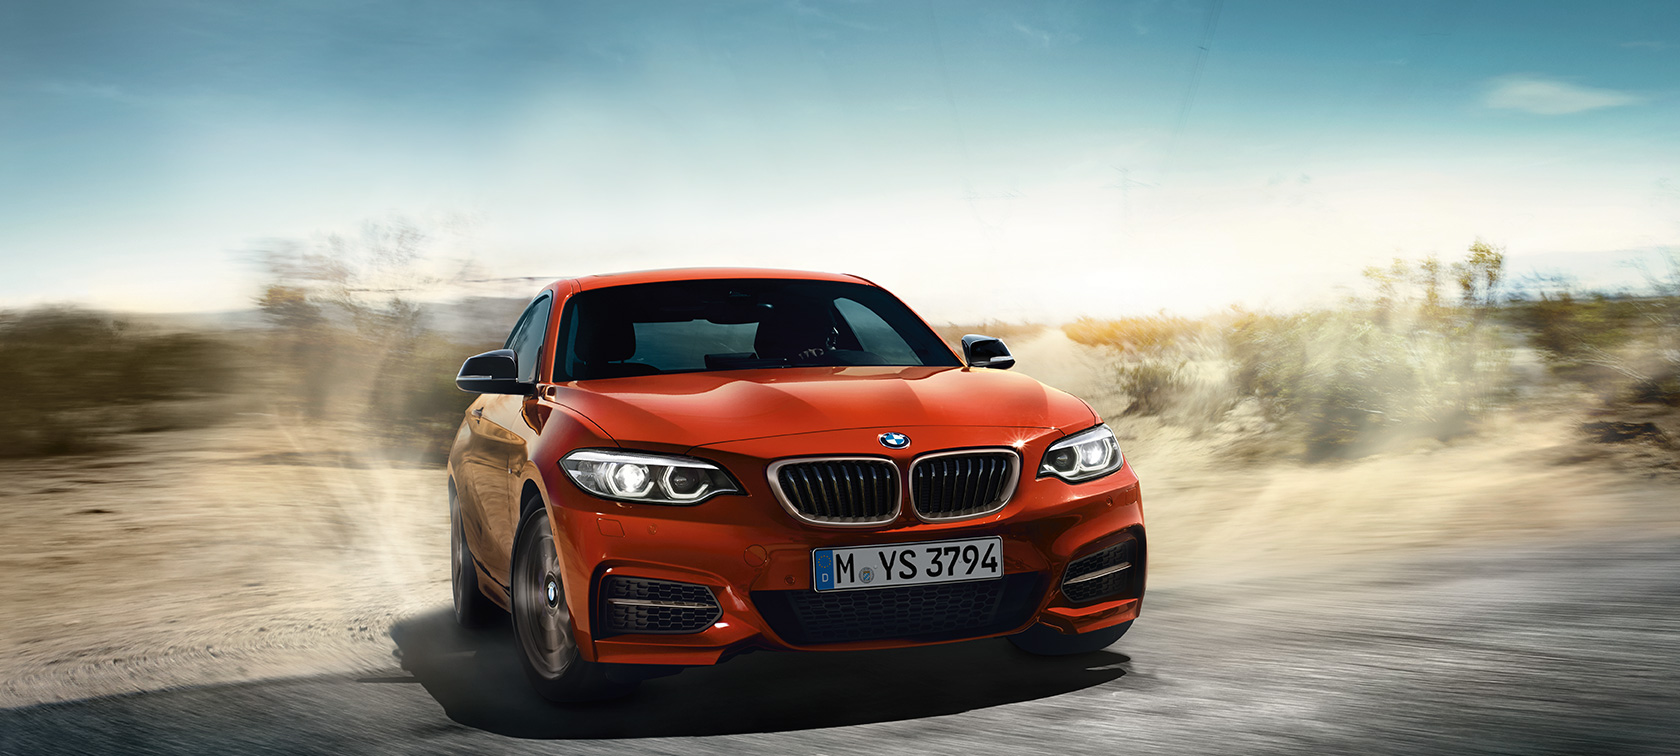 BMW Serie 2 Coupé, ripresa dinamica in movimento F22